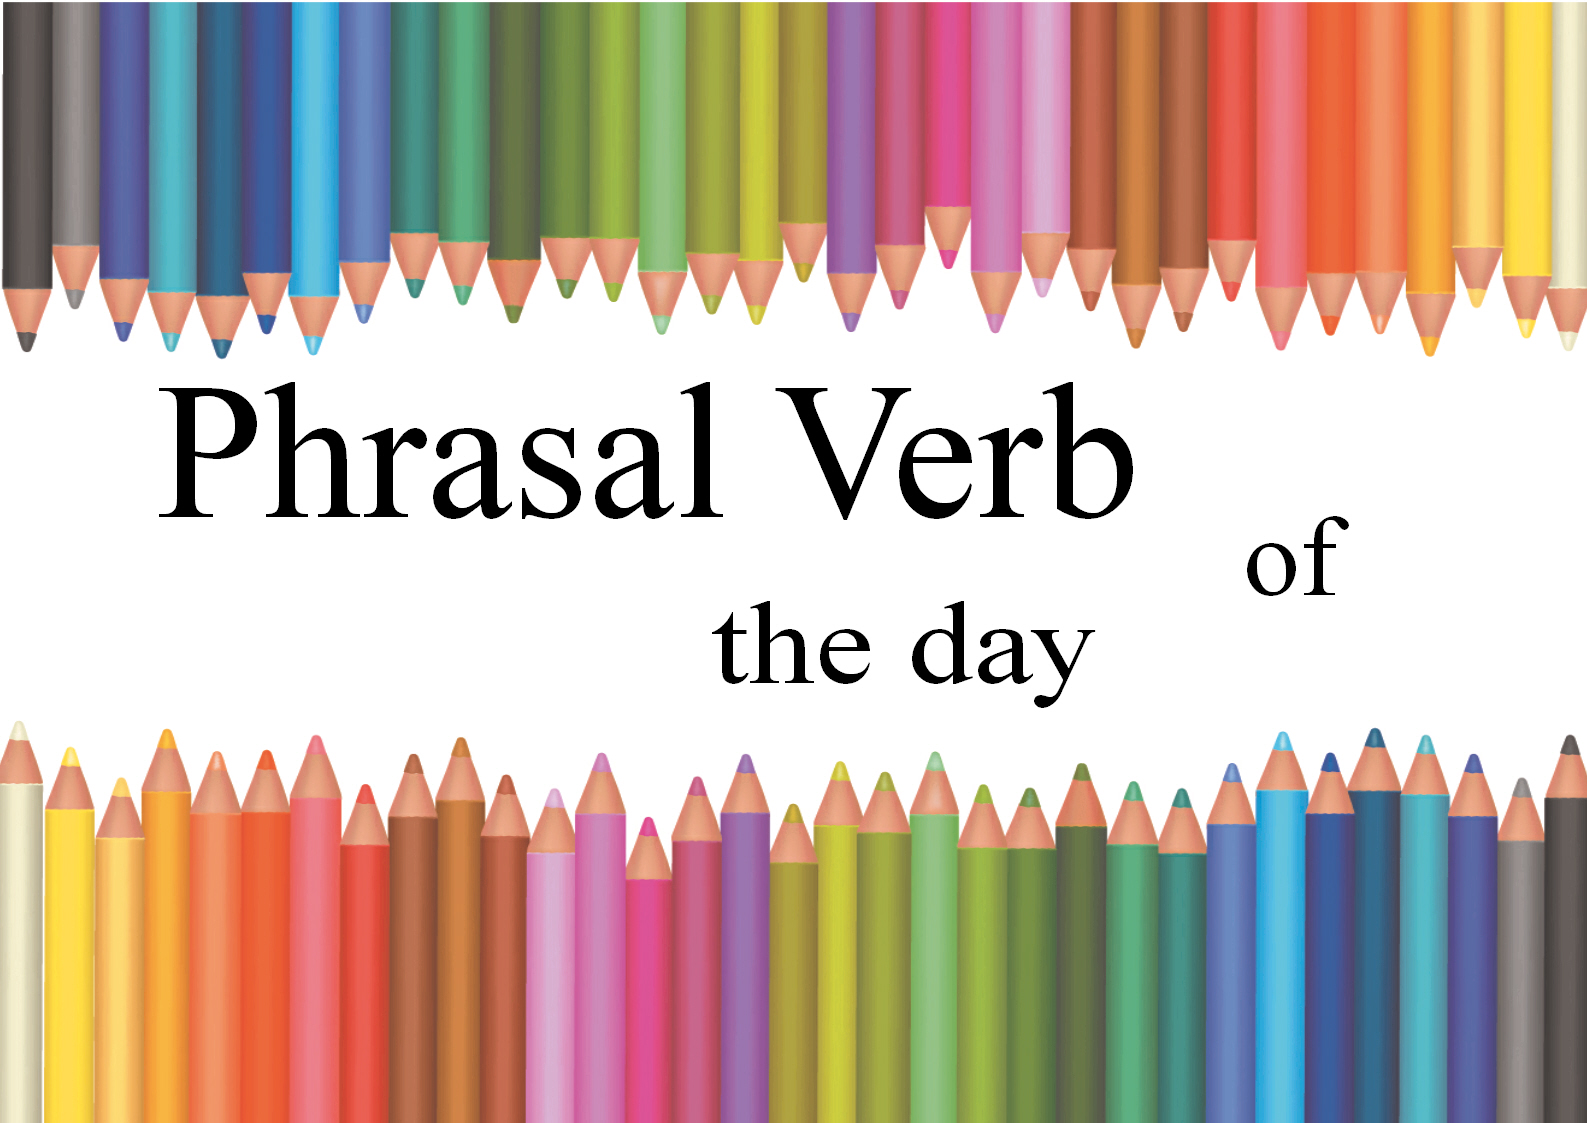 phrasal verb of the day